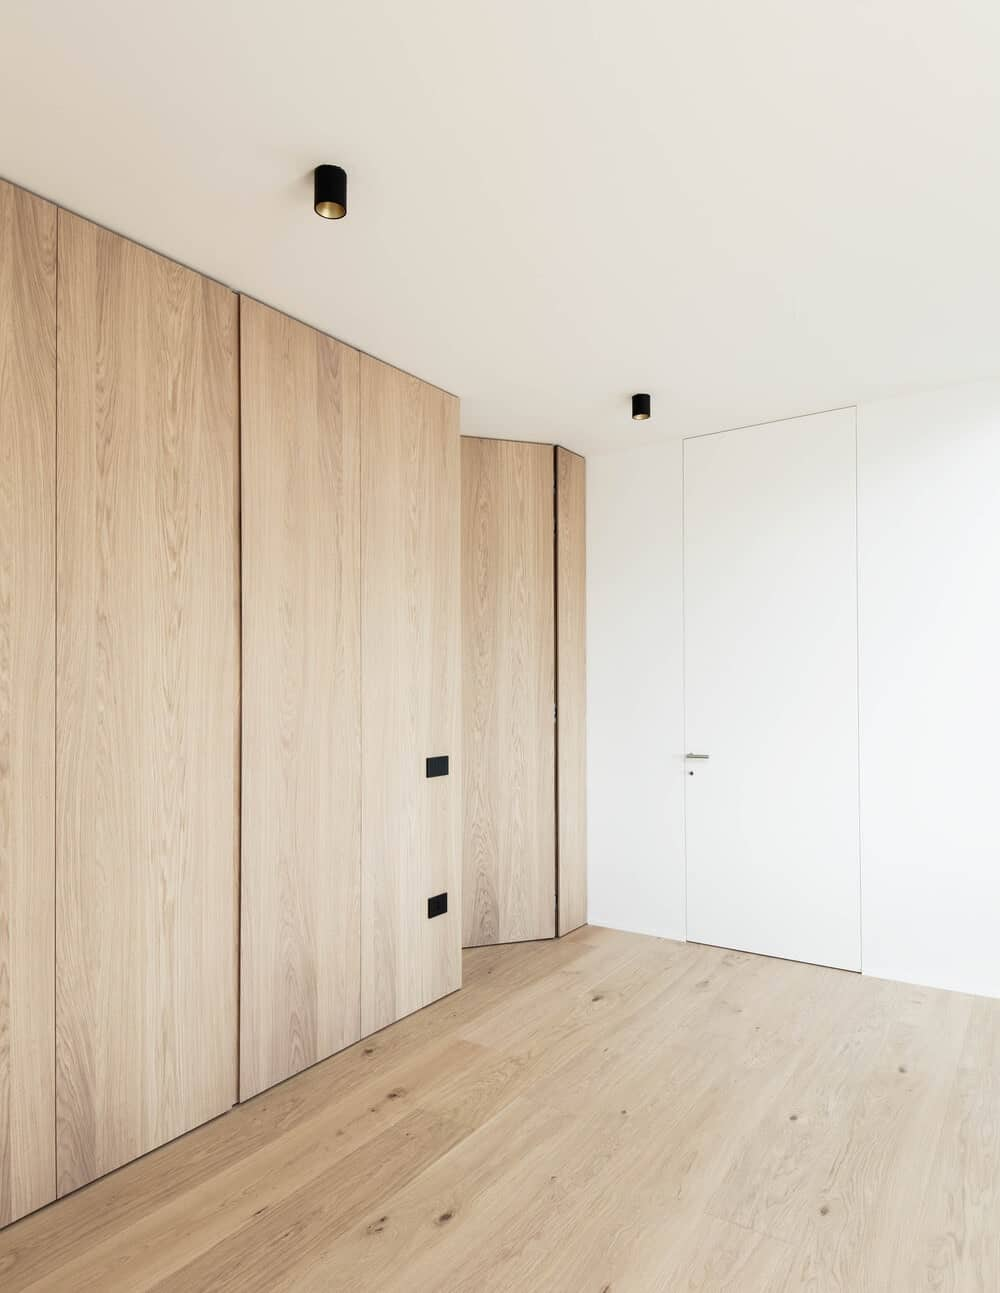 This is a closer look at the wooden panels and hardwood flooring of the far corner of the living room as well as the modern lighting above.